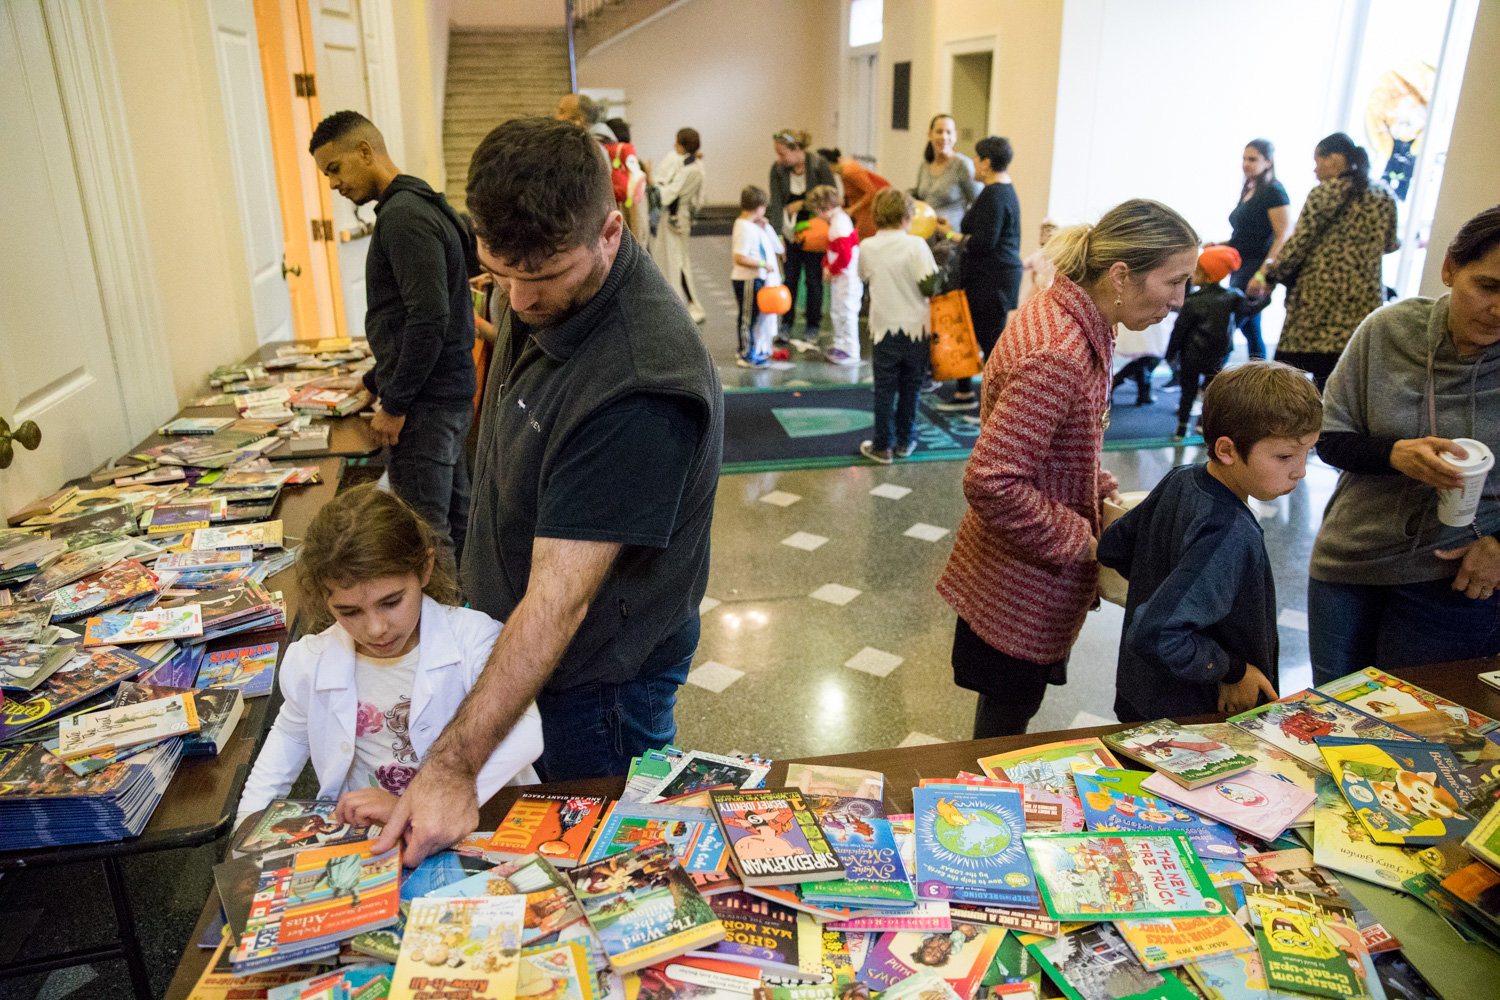 While children got their sugary fix at Manhattan College's Safe Halloween event, they also were able to get their literary fix with a selection of children's books.